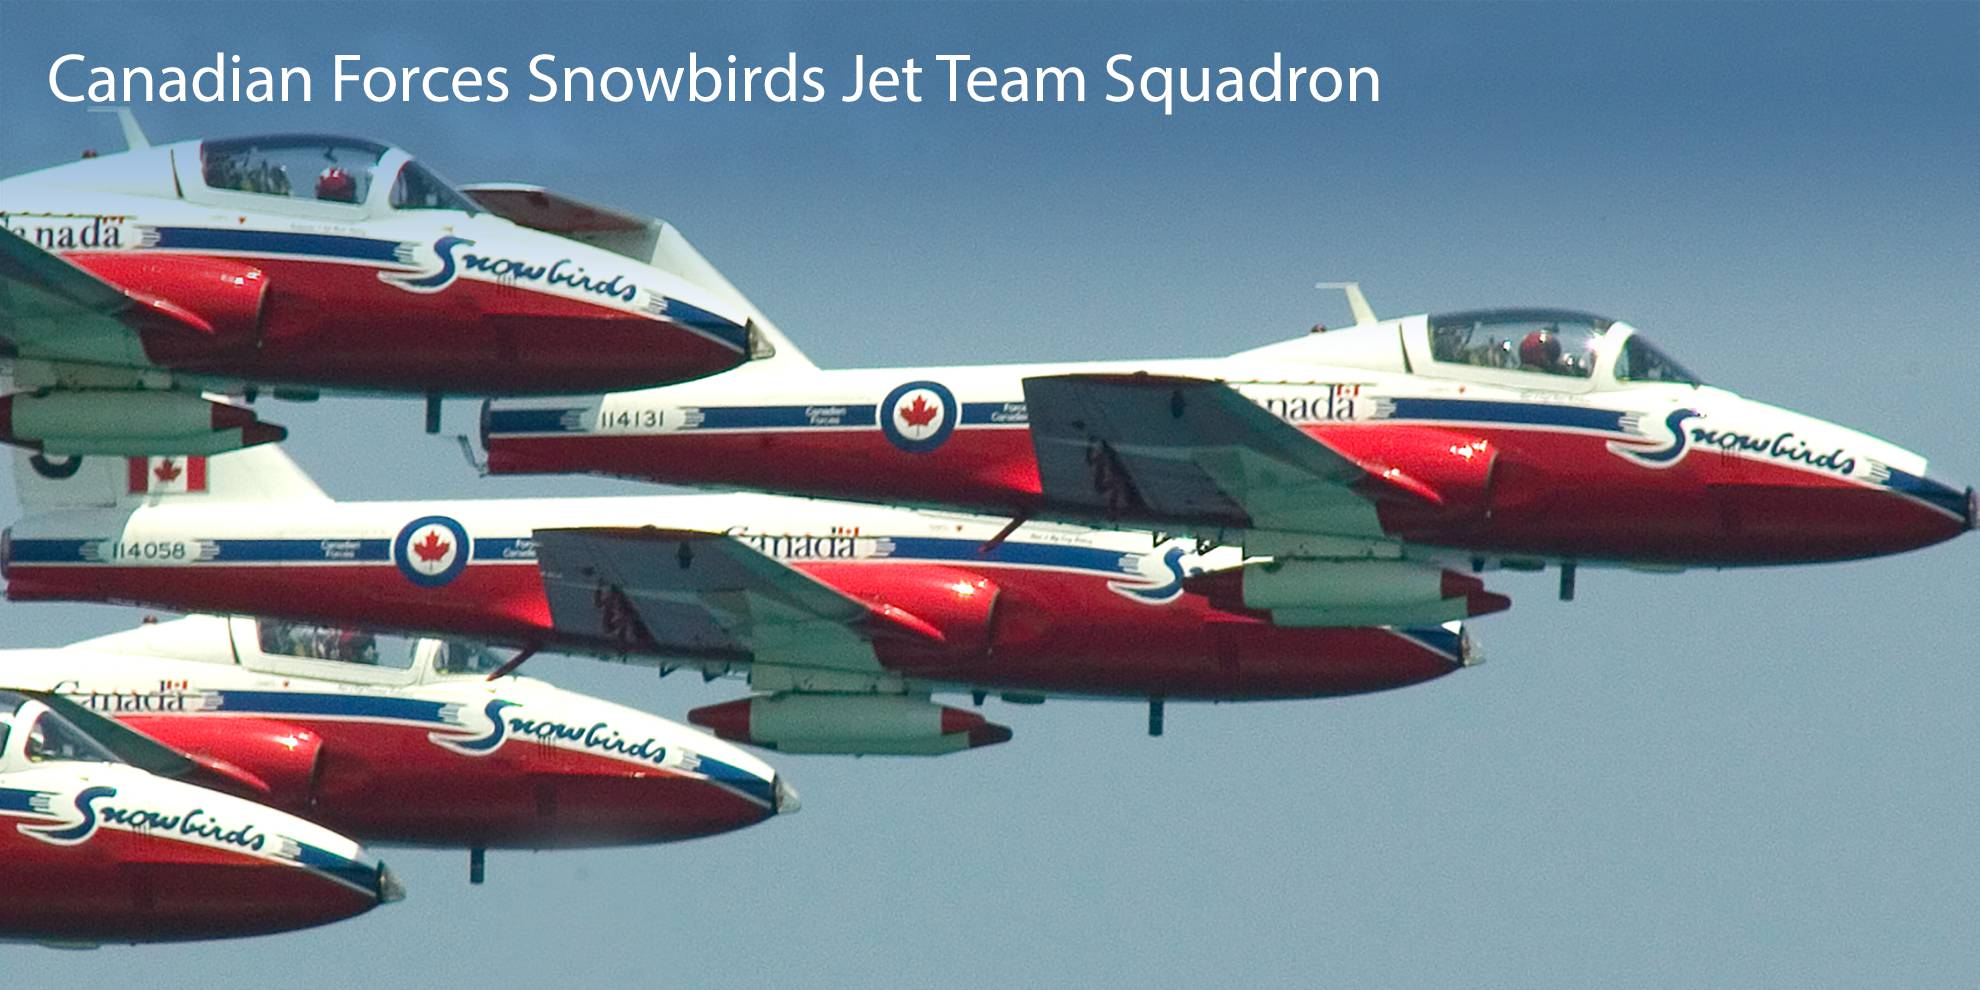 Canadian Forces Snowbirds 431 Air Demonstration Squadron